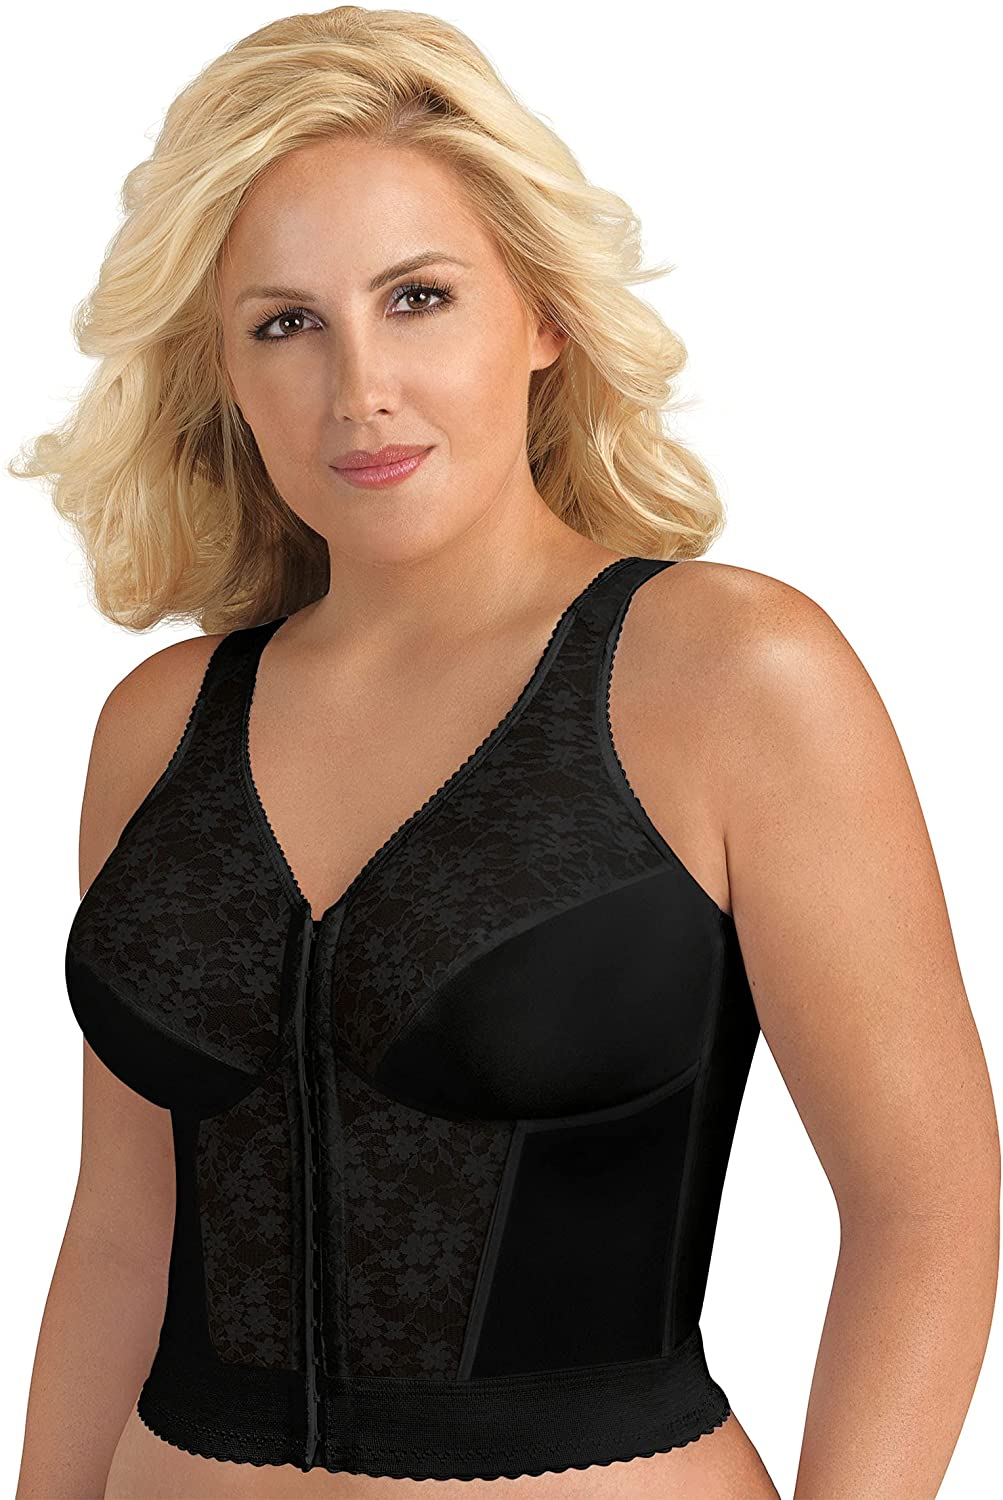 Exquisite Form FULLY Full-Coverage Slimming Longline Posture Bra, Front Closure, Lace, Wire-Free #5107565